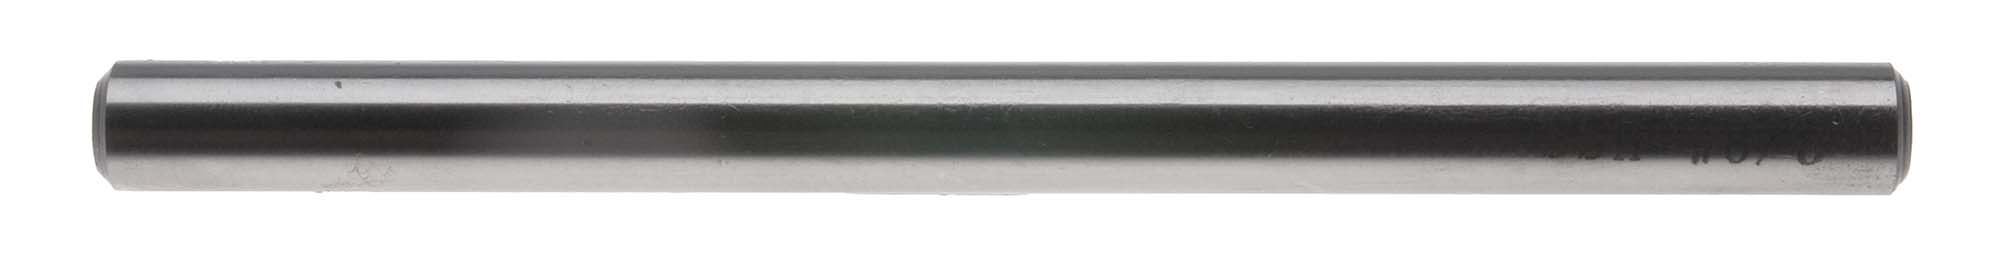 "9/64"" Jobber Length Drill Blank - High Speed Steel"